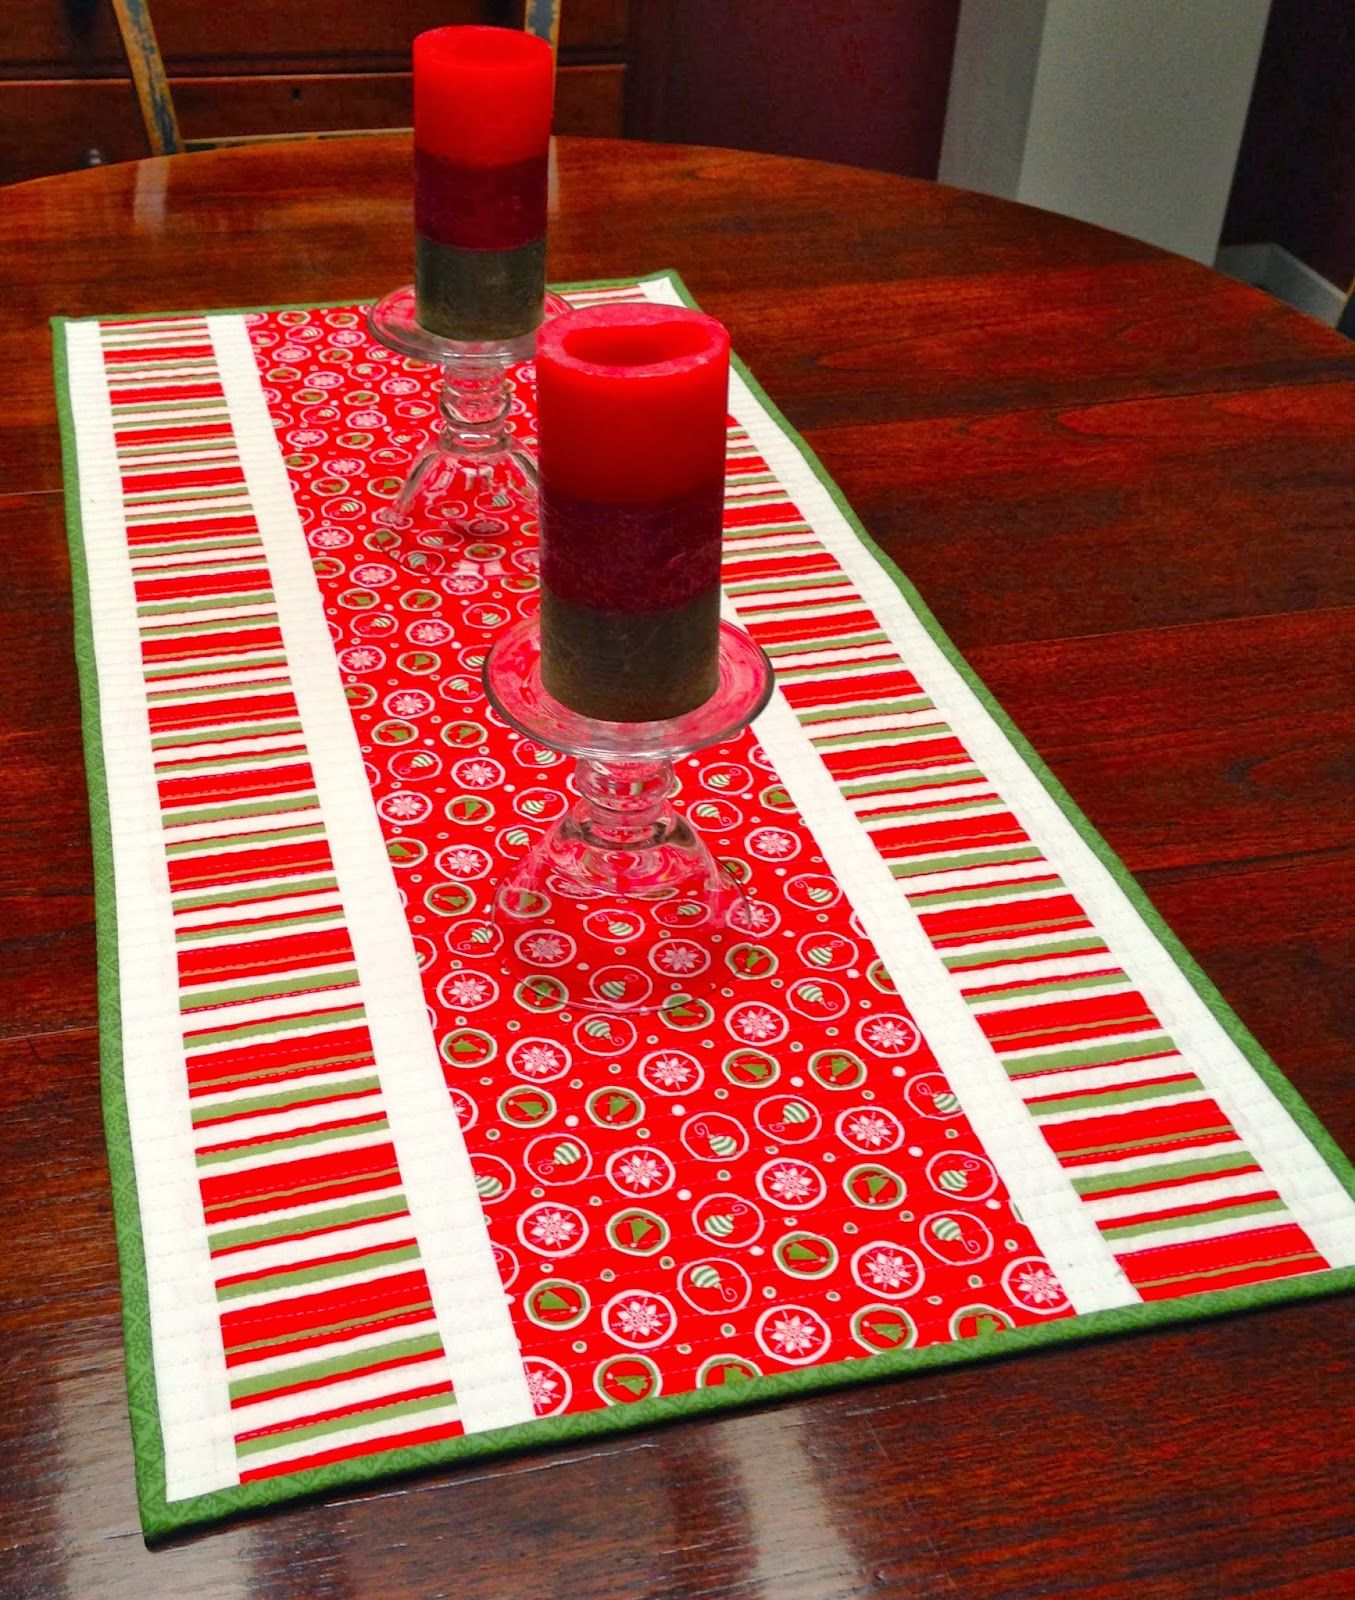 Christmas Table Runner Patterns Free.Christmas Table Runner Patterns Free Google Search